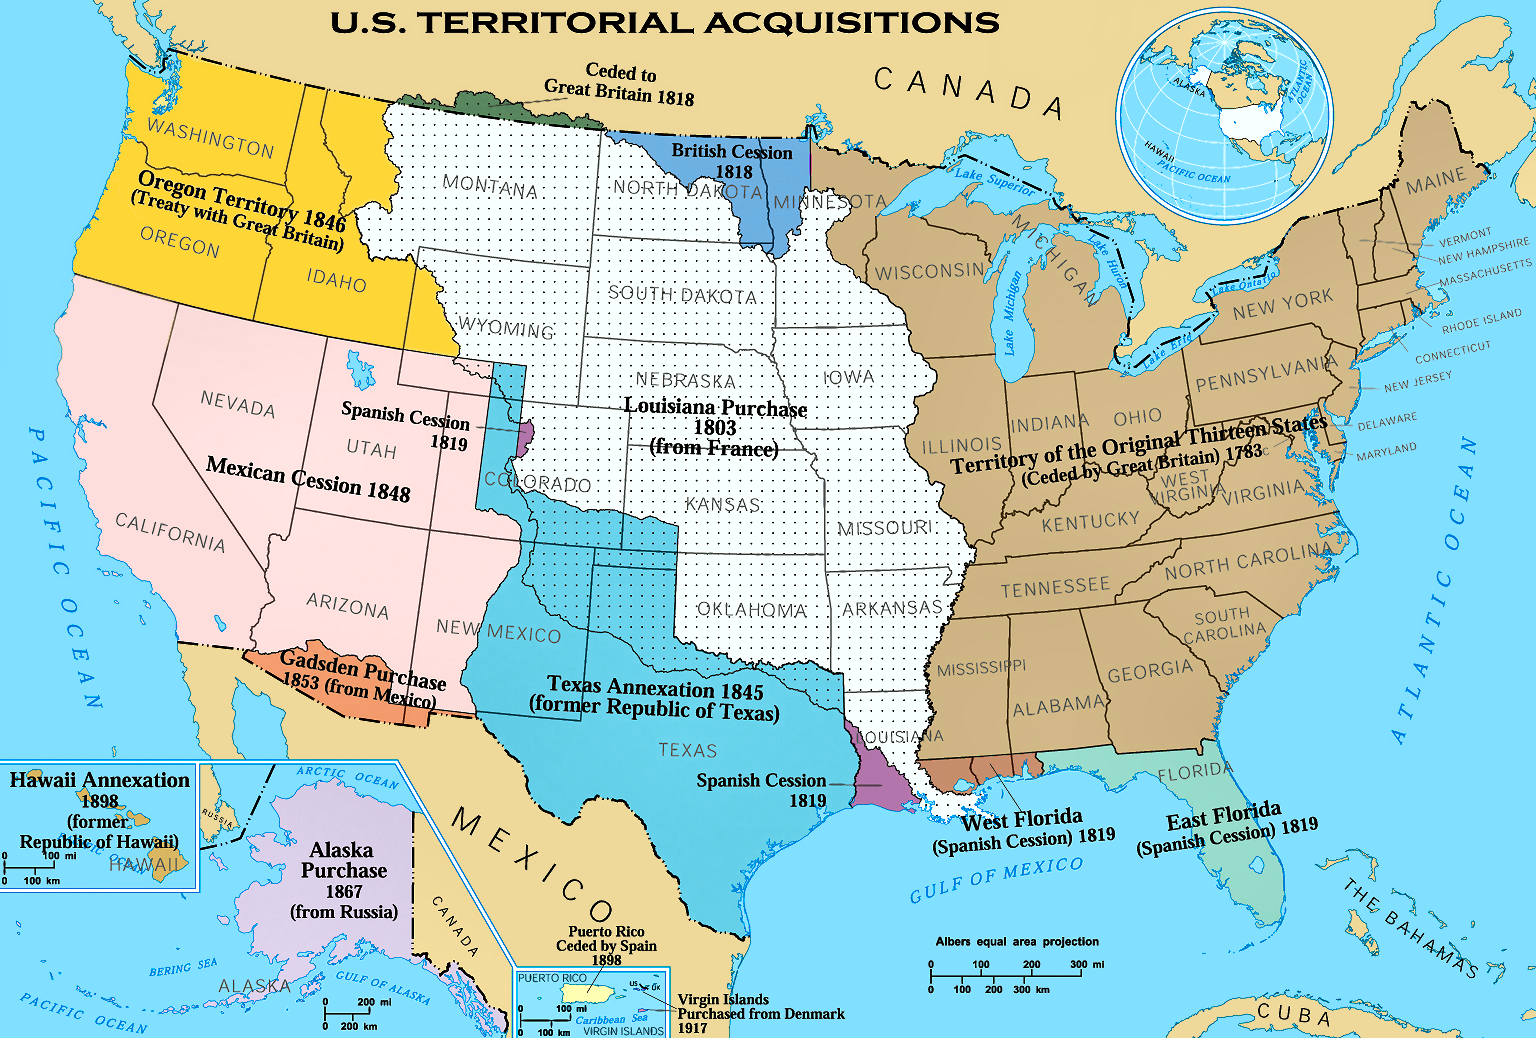 Map Of Us Territories File:U.S. Territorial Acquisitions.png   Wikimedia Commons